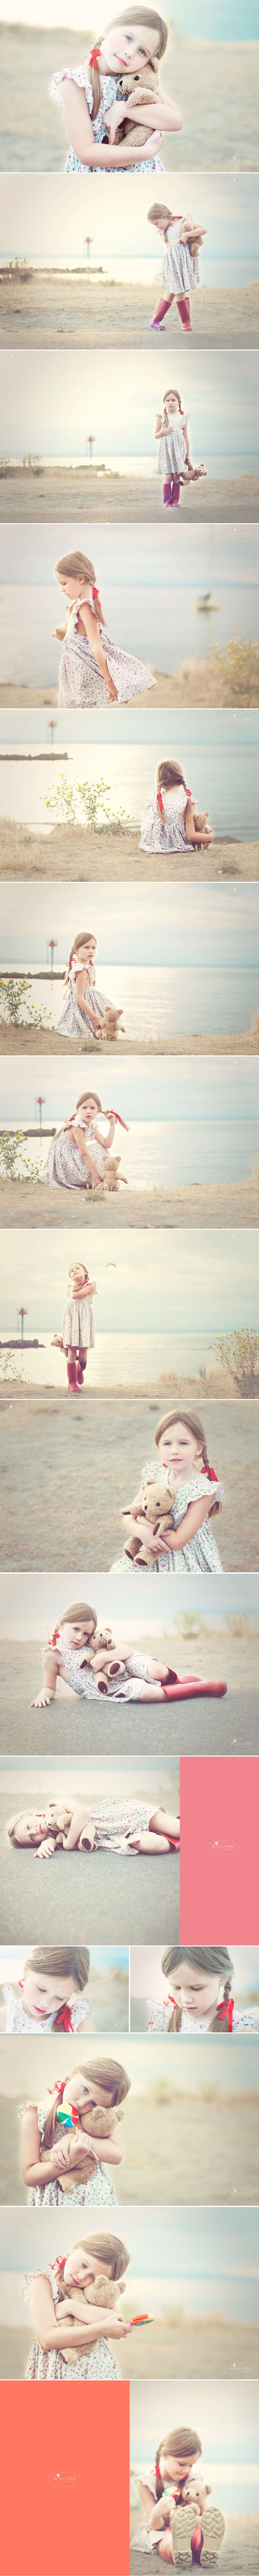 miss myra in seattle / seattle child photographer » The Red Balloon Photography